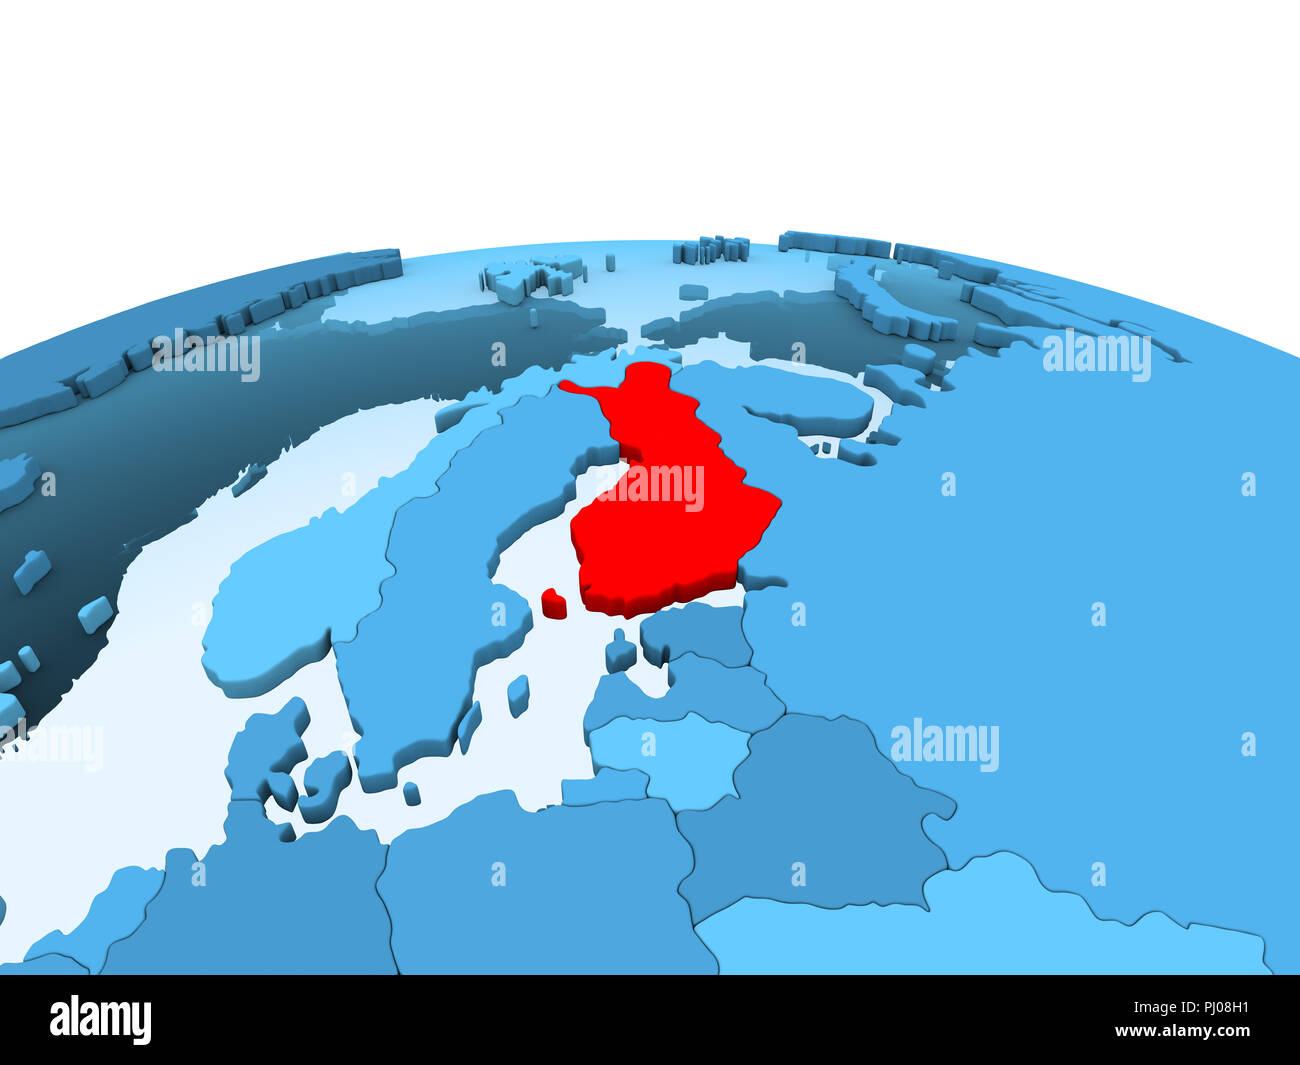 Map Of Finland In Red On Blue Political Globe With Transparent